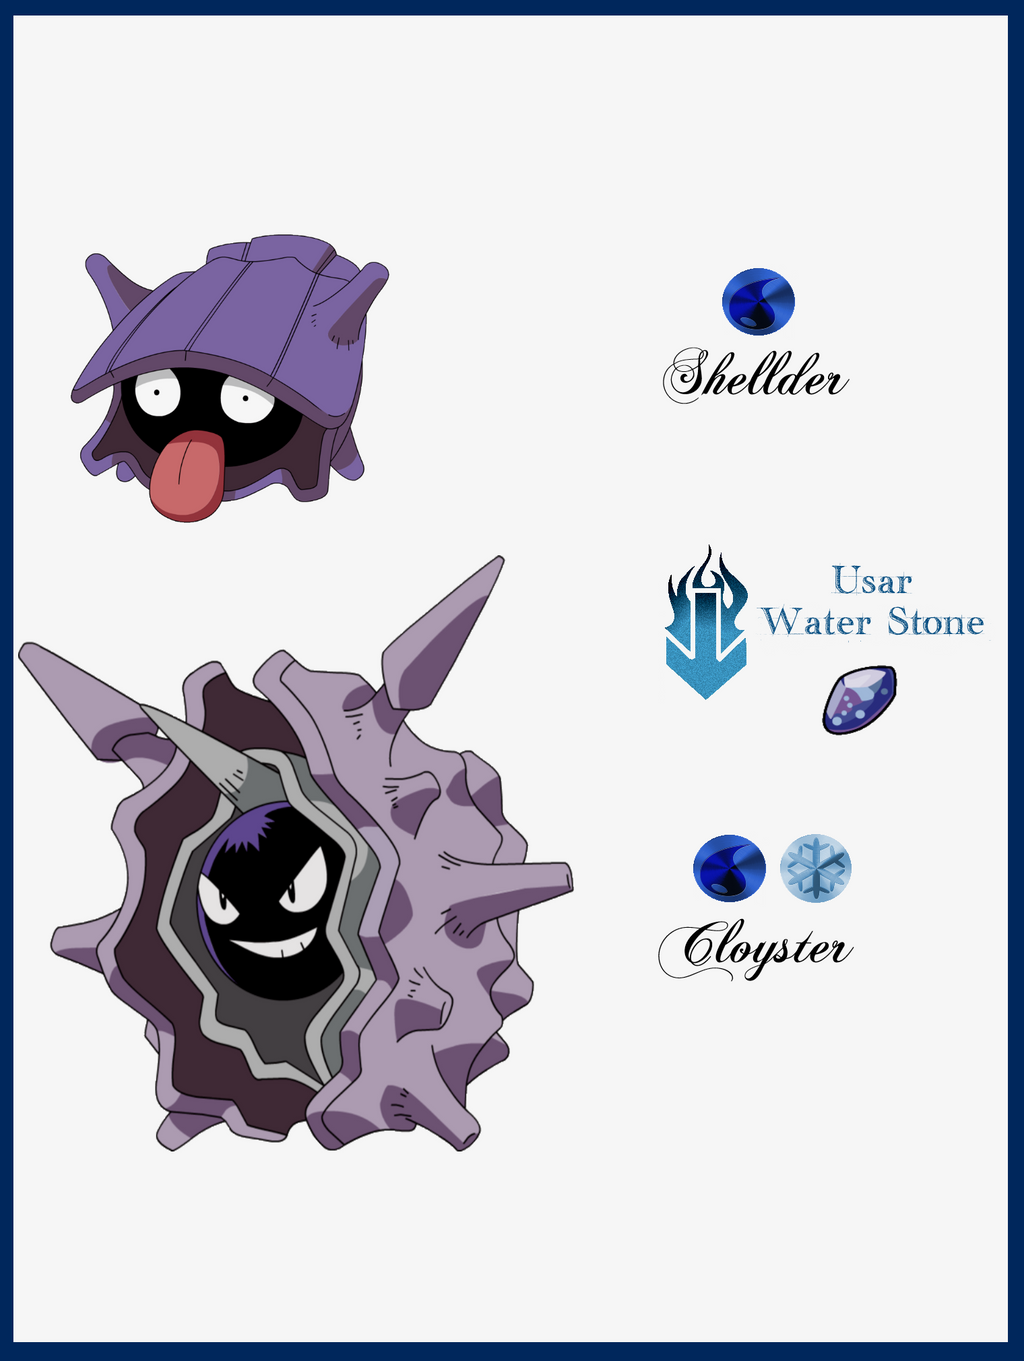 039 Shellder Evoluciones by Maxconnery on DeviantArt